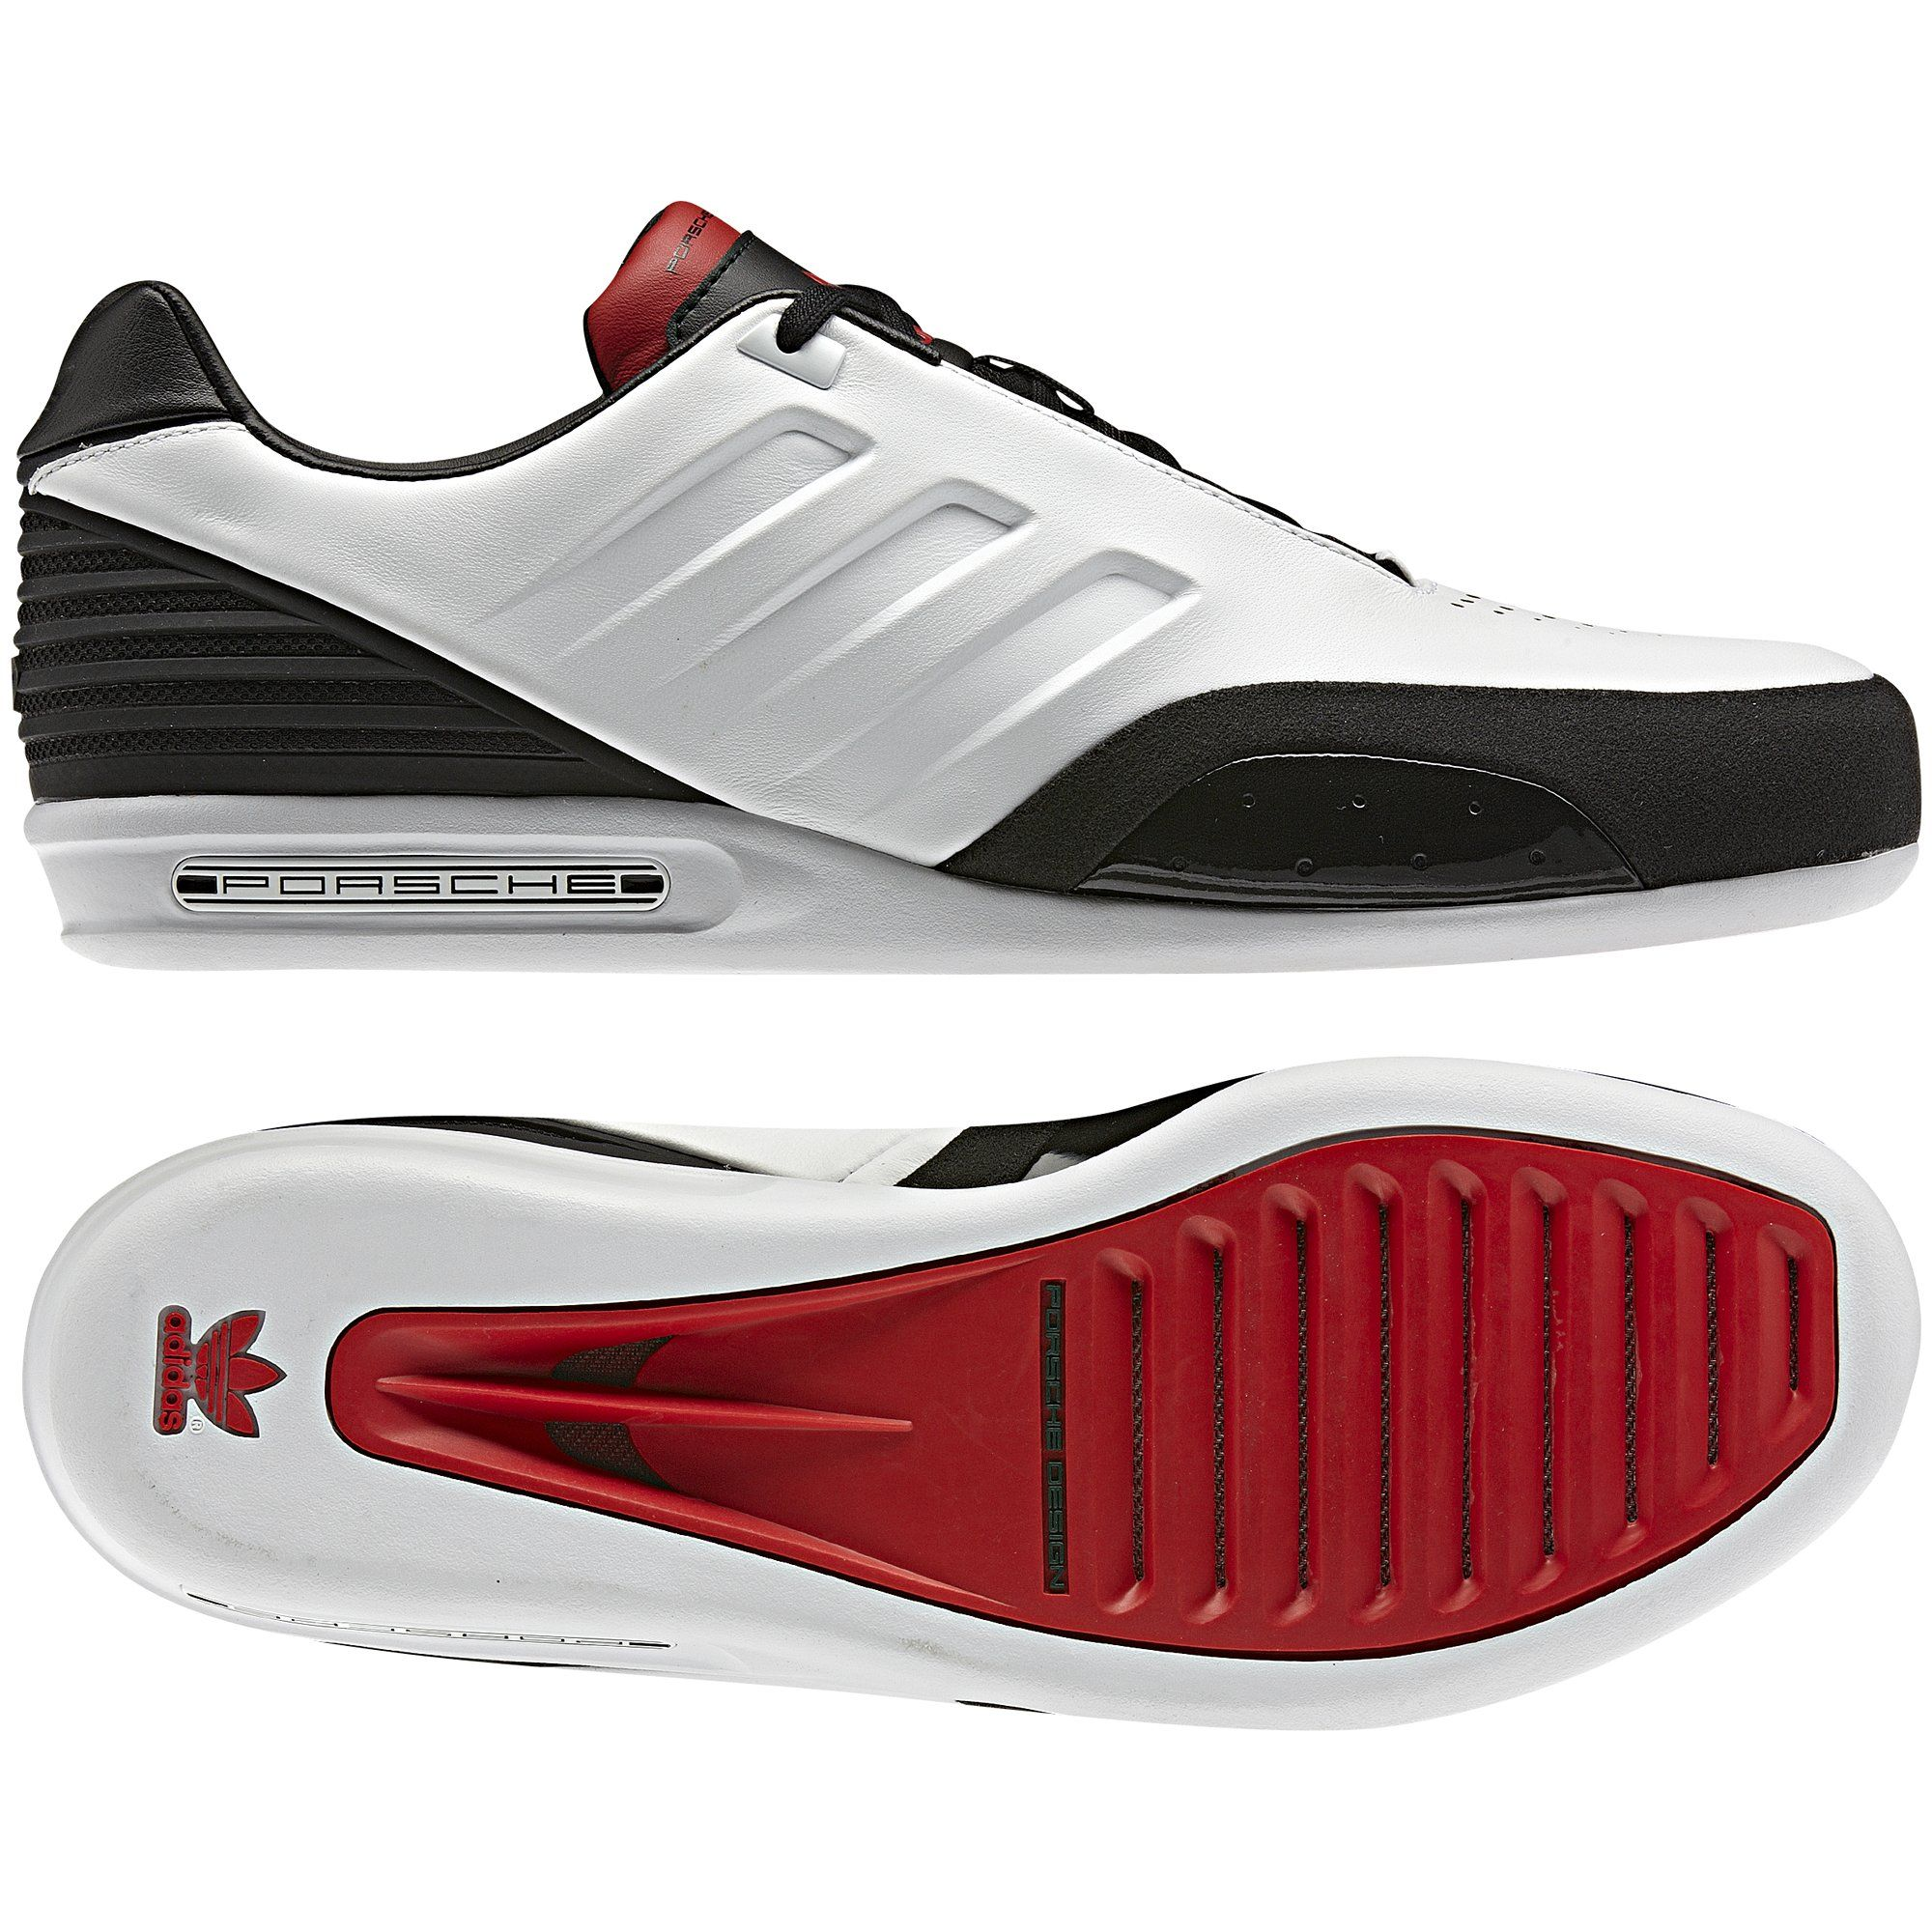 f96e09d3d608 Men s Adidas Porsche 917 Shoes